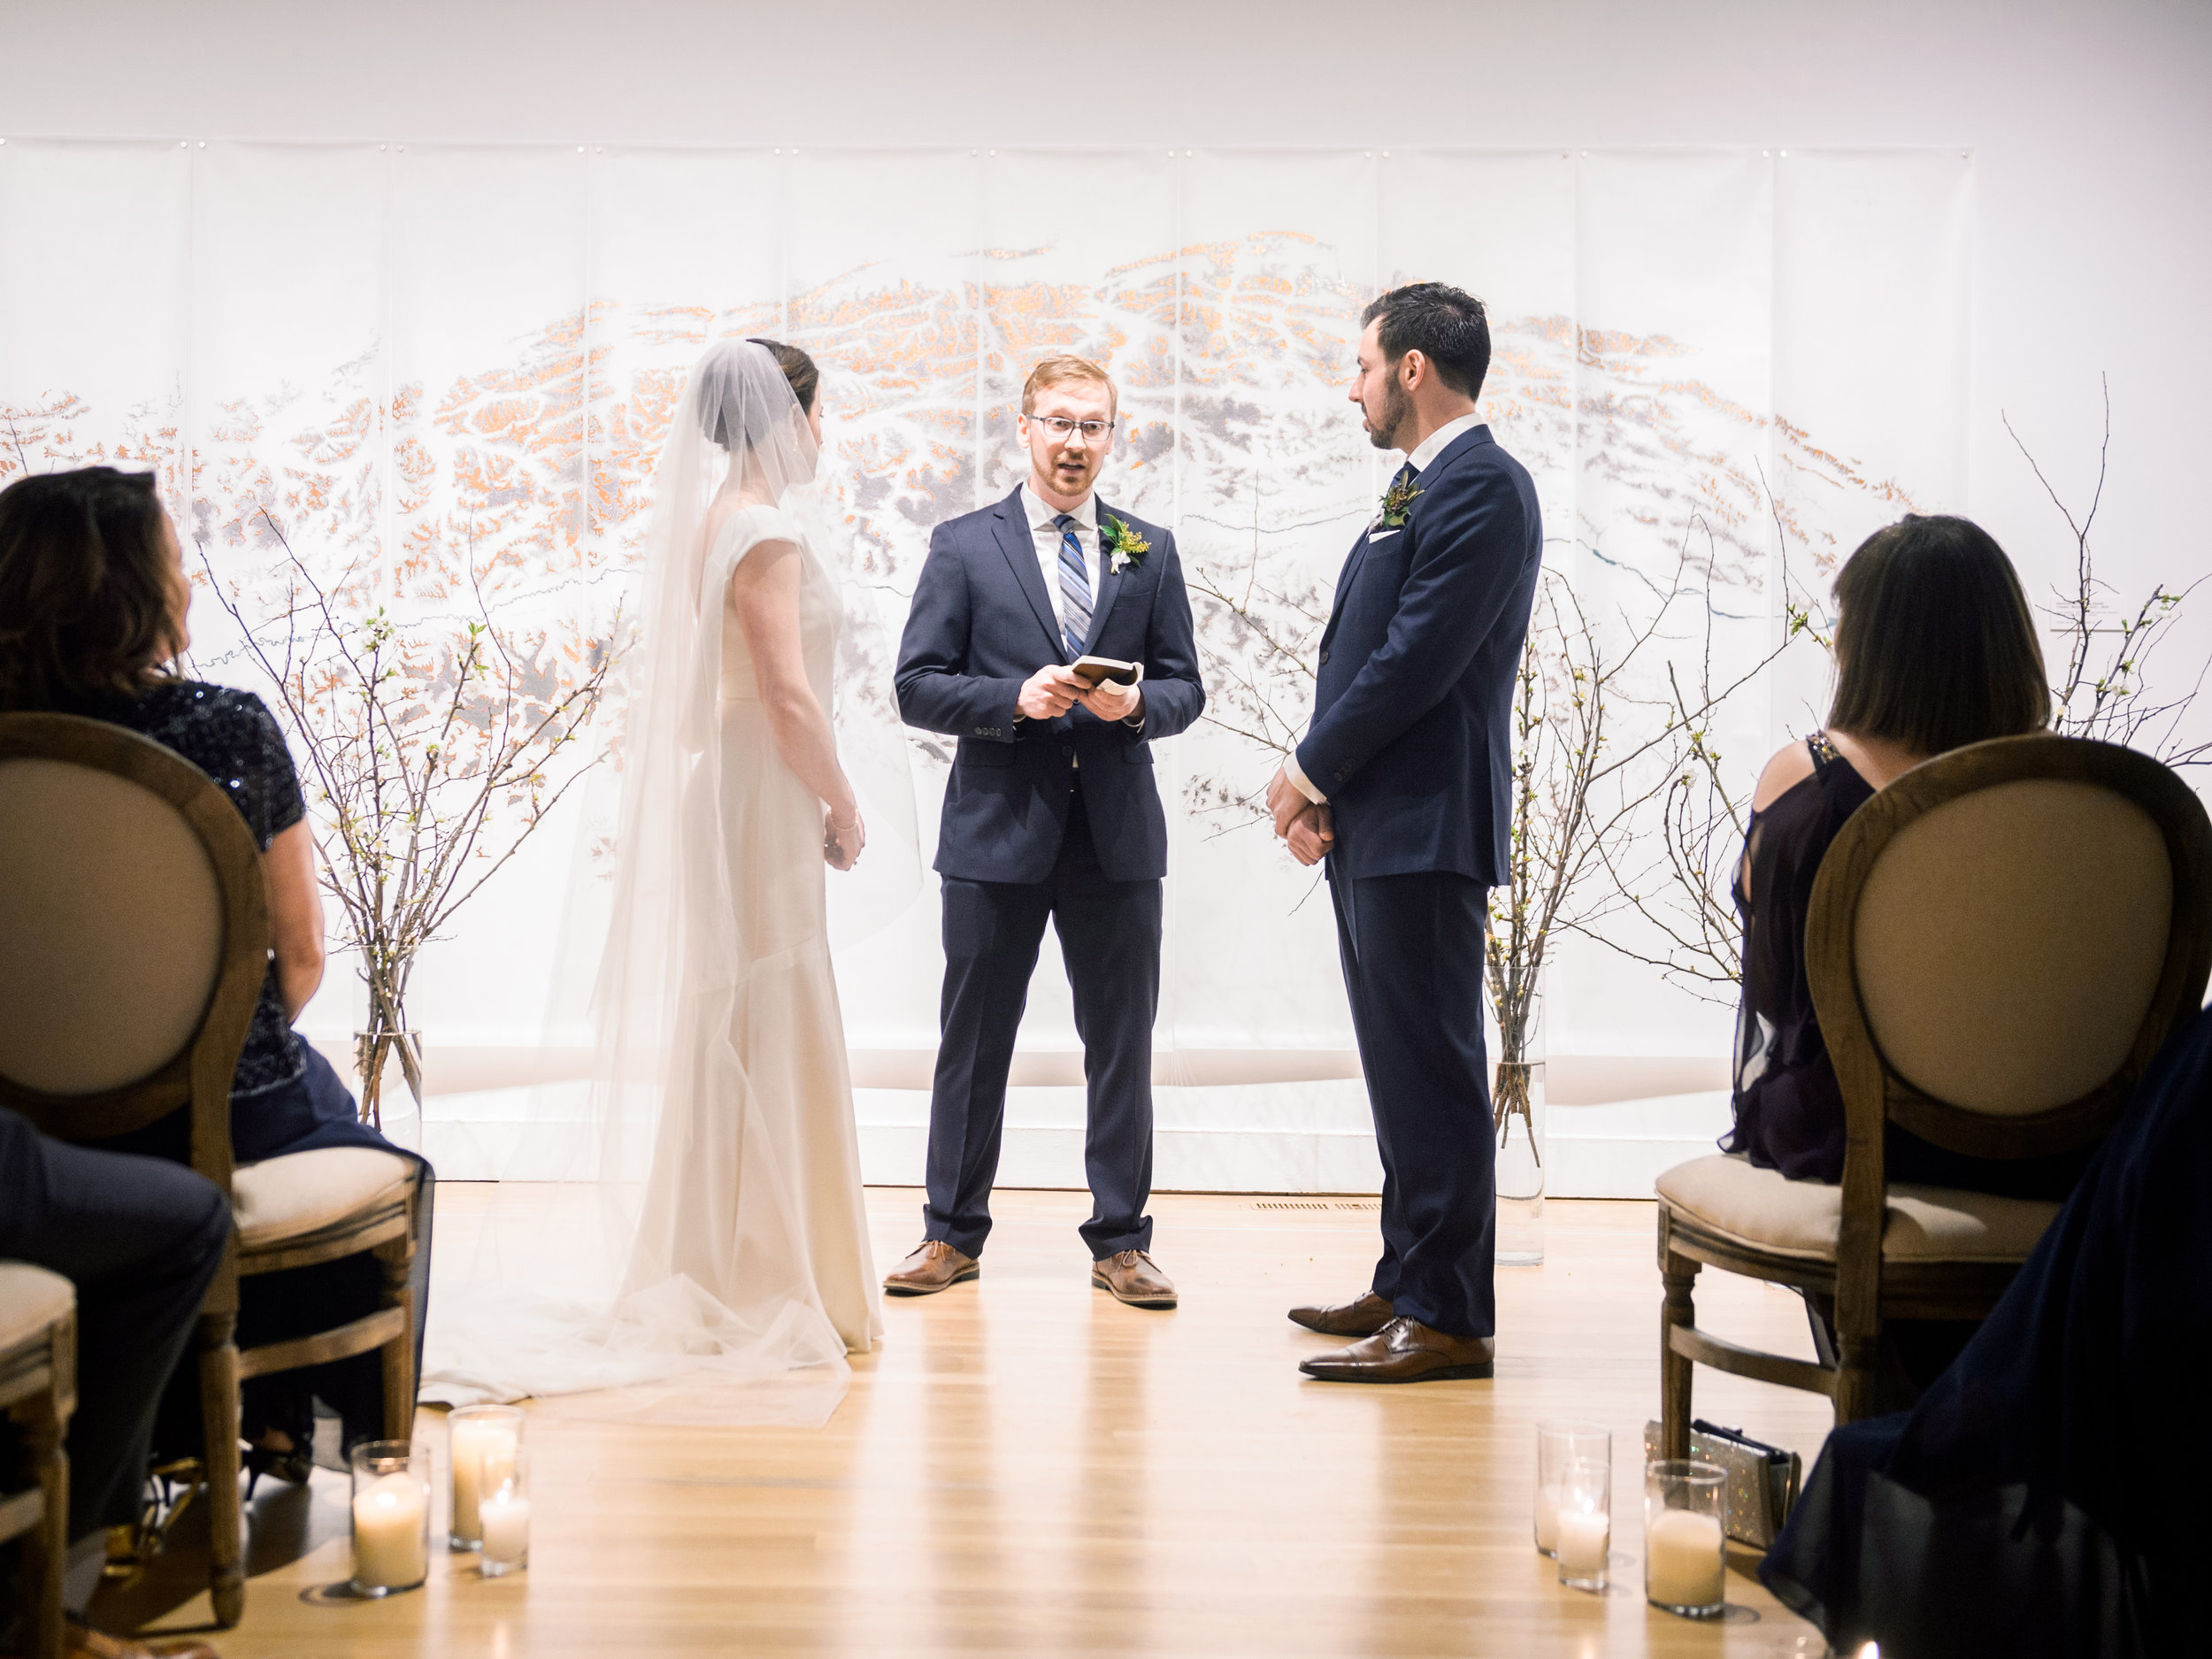 BMoCA Boulder Wedding with Film Photographer Tara Bielecki